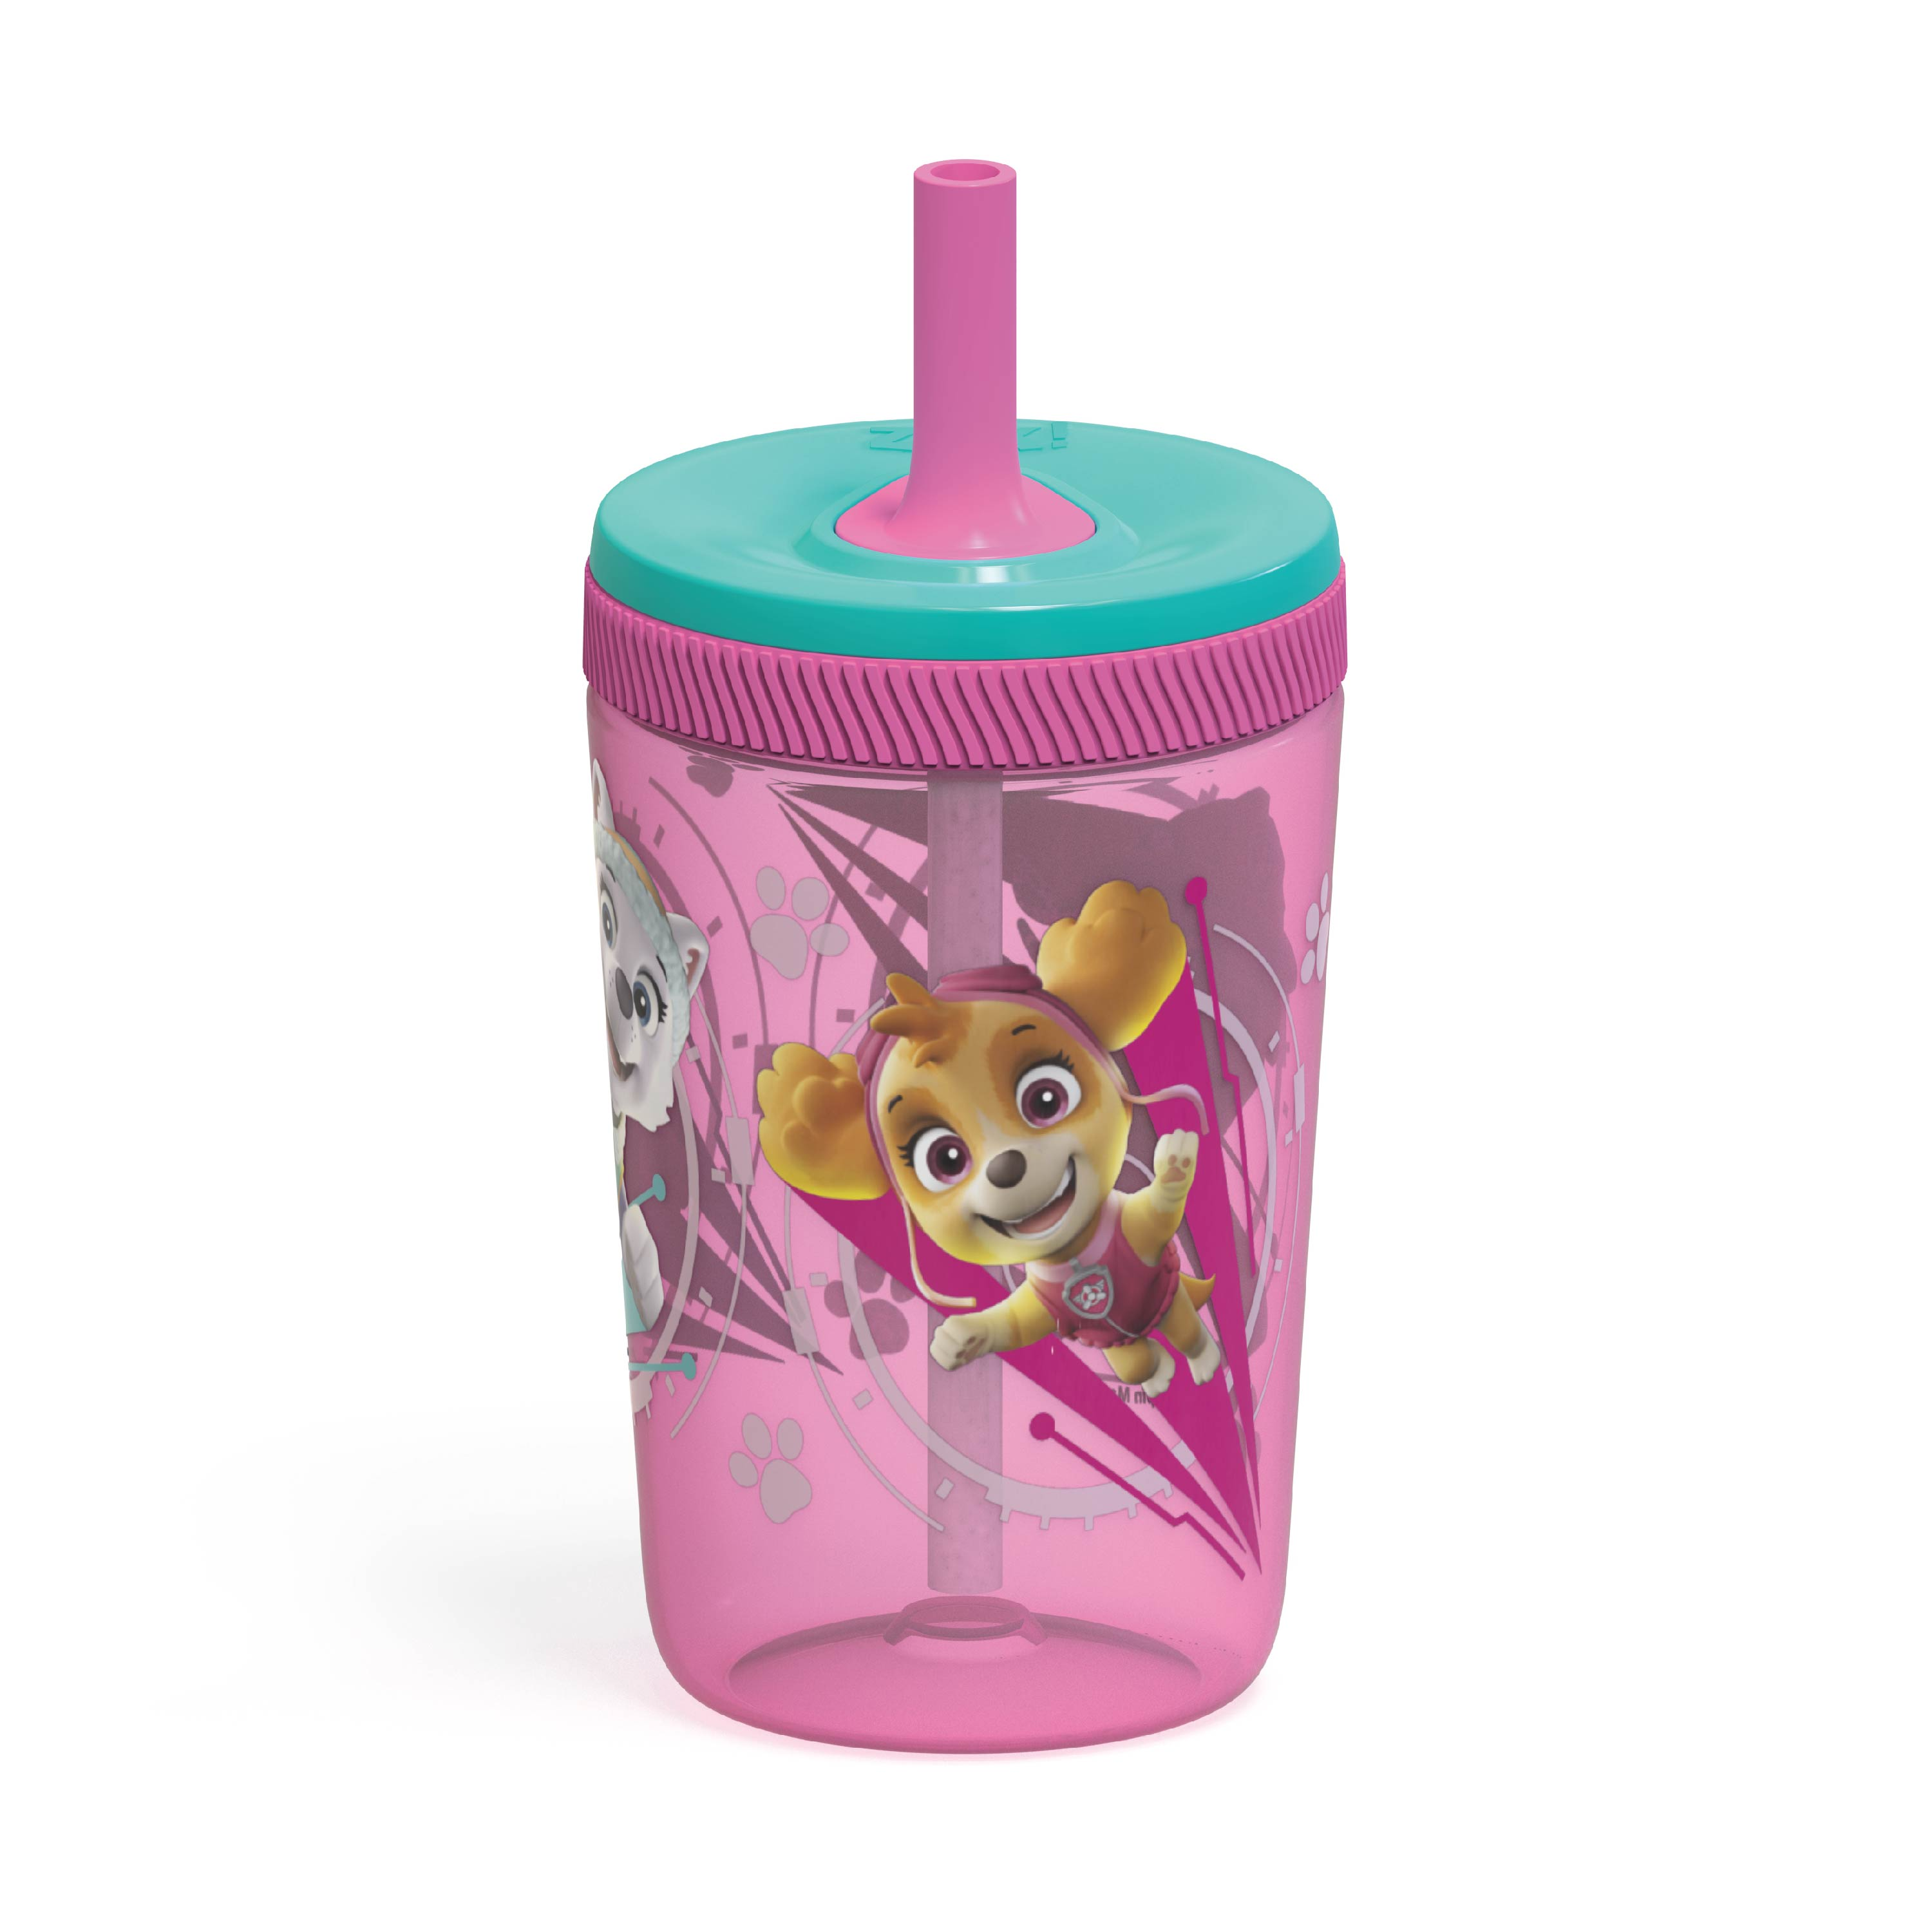 Paw Patrol 15  ounce Plastic Tumbler with Lid and Straw, Marshall and Skye, 2-piece set slideshow image 3